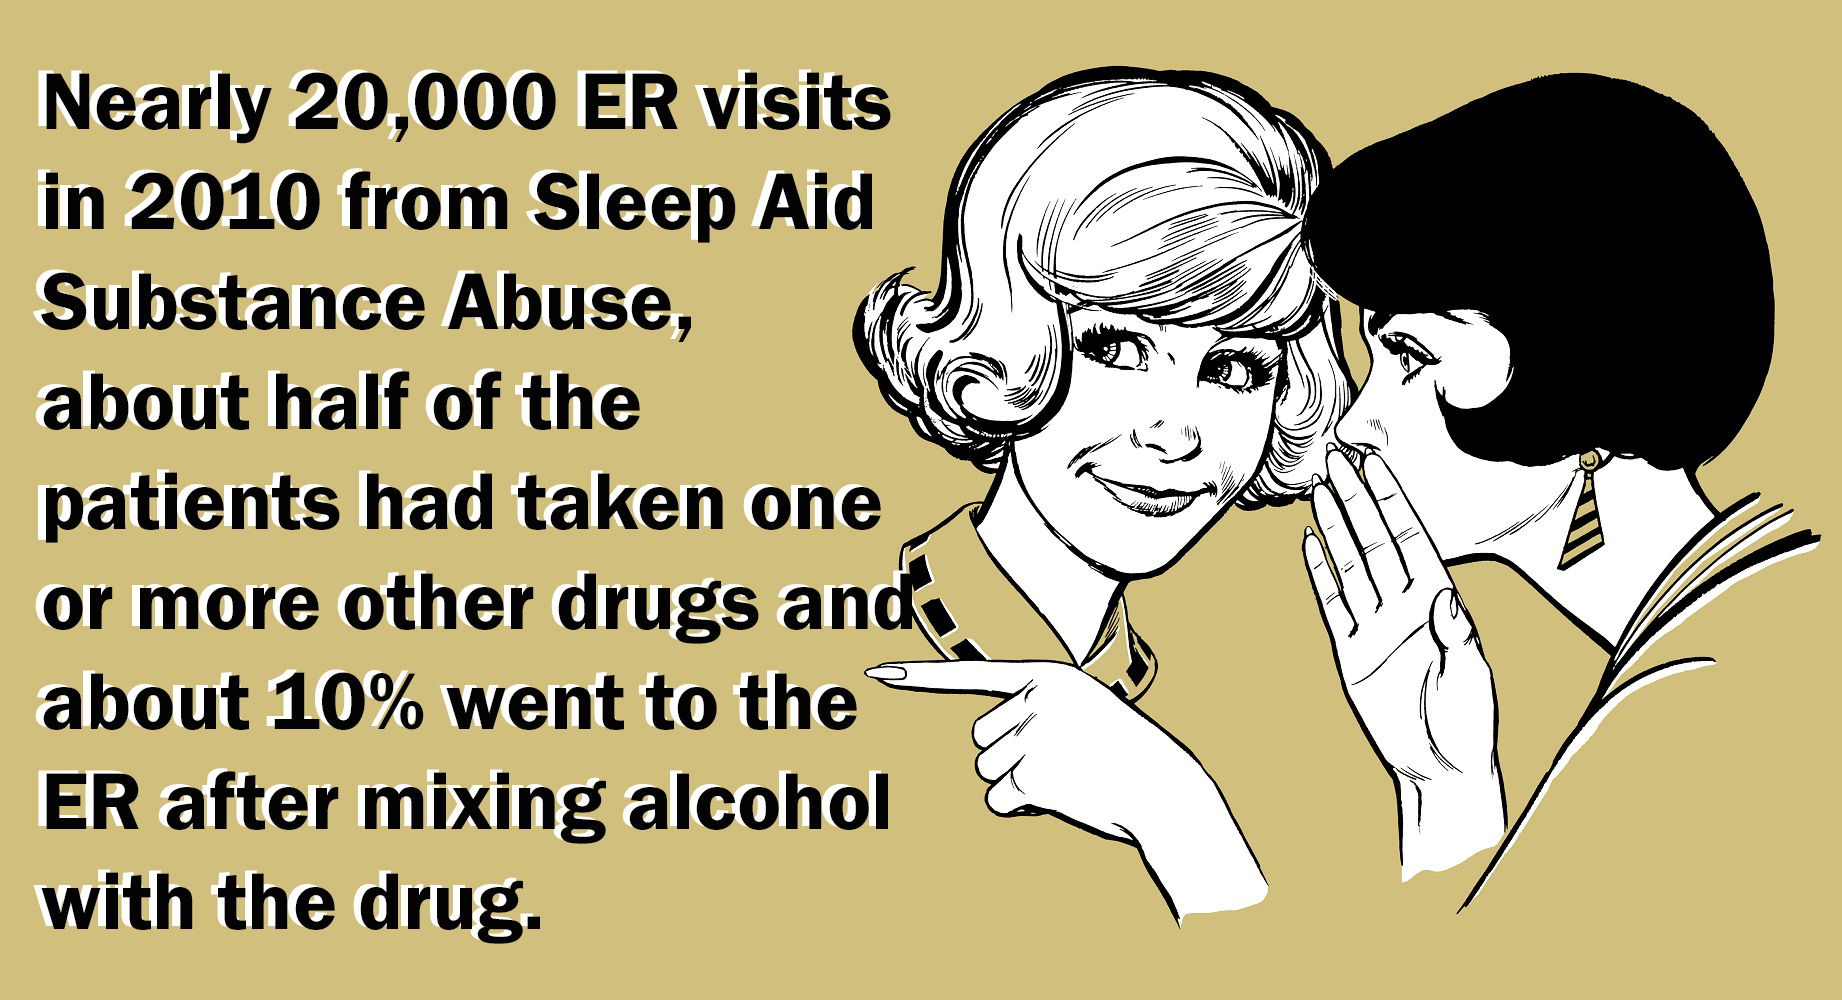 Sleep-Aid-Substance-Abuse.jpg